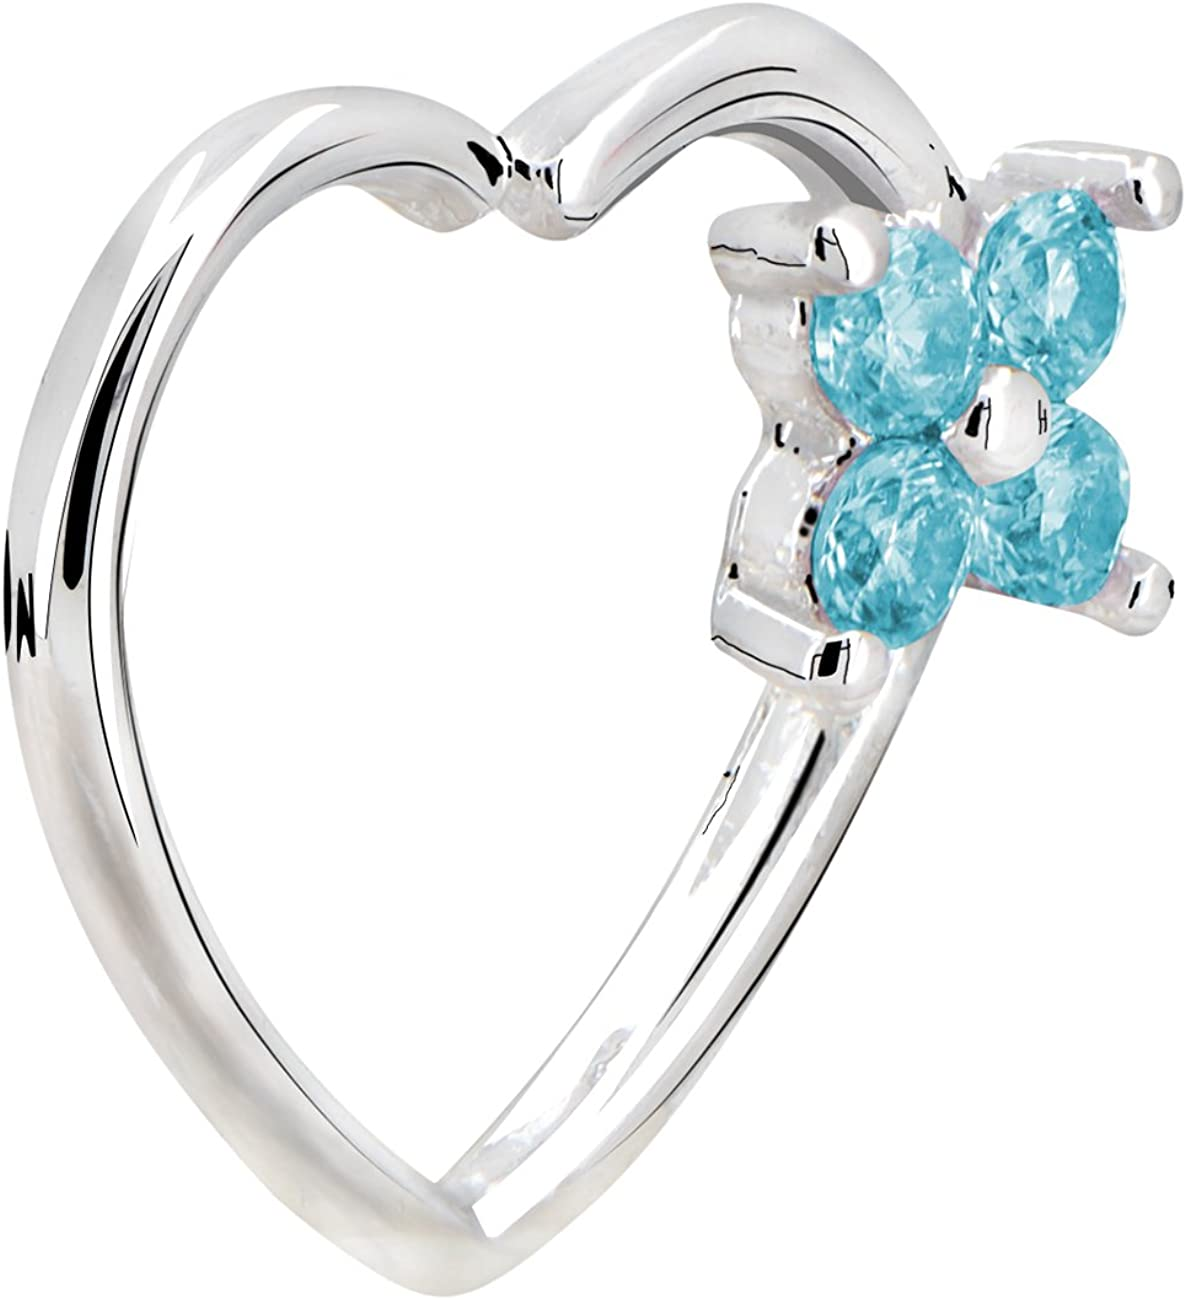 OUFER 16Gauge Flower CZ Heart Left Closure Daith Cartilage Tragus Earrings Body Piercing Jewelry (white teal)